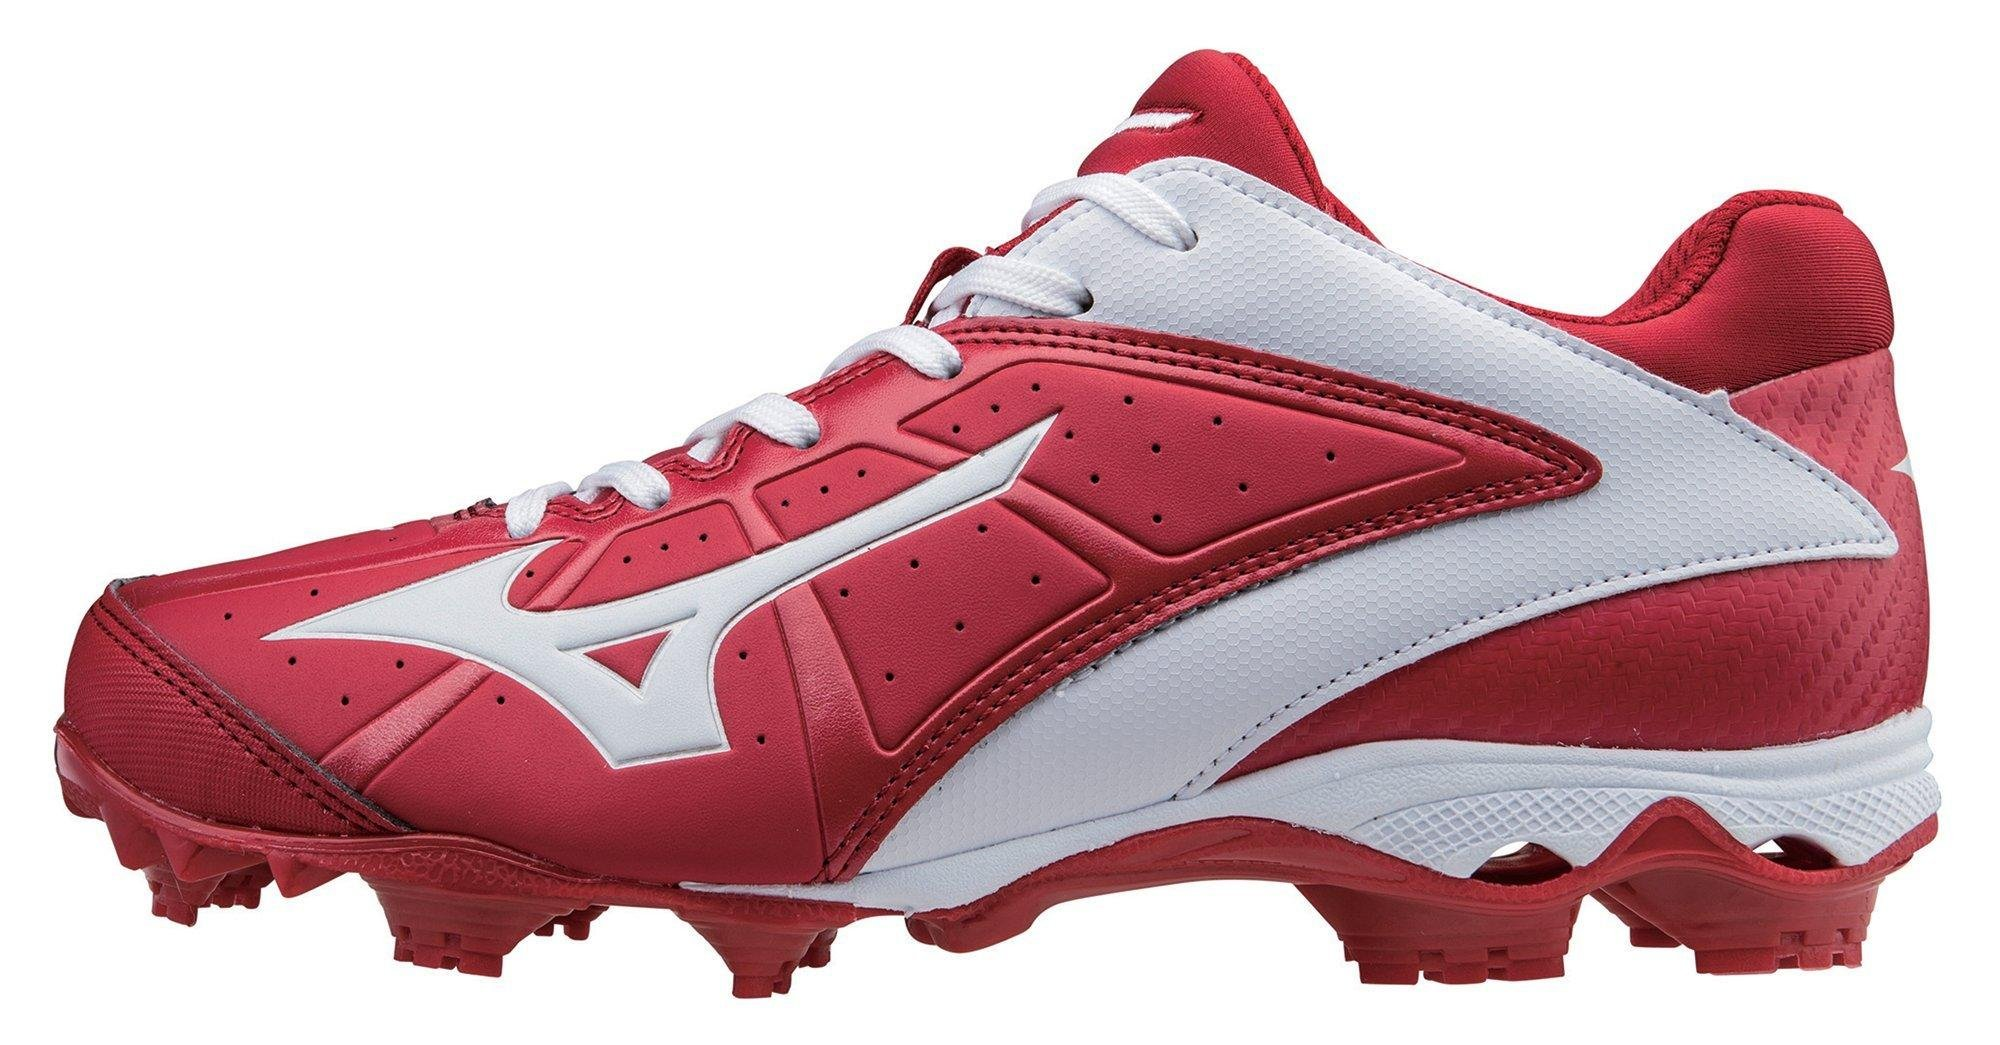 Mizuno Women's 9 Spike ADV Finch Elite 2 Fast Pitch Molded Softball Cleat, Red/White, 9.5 M US